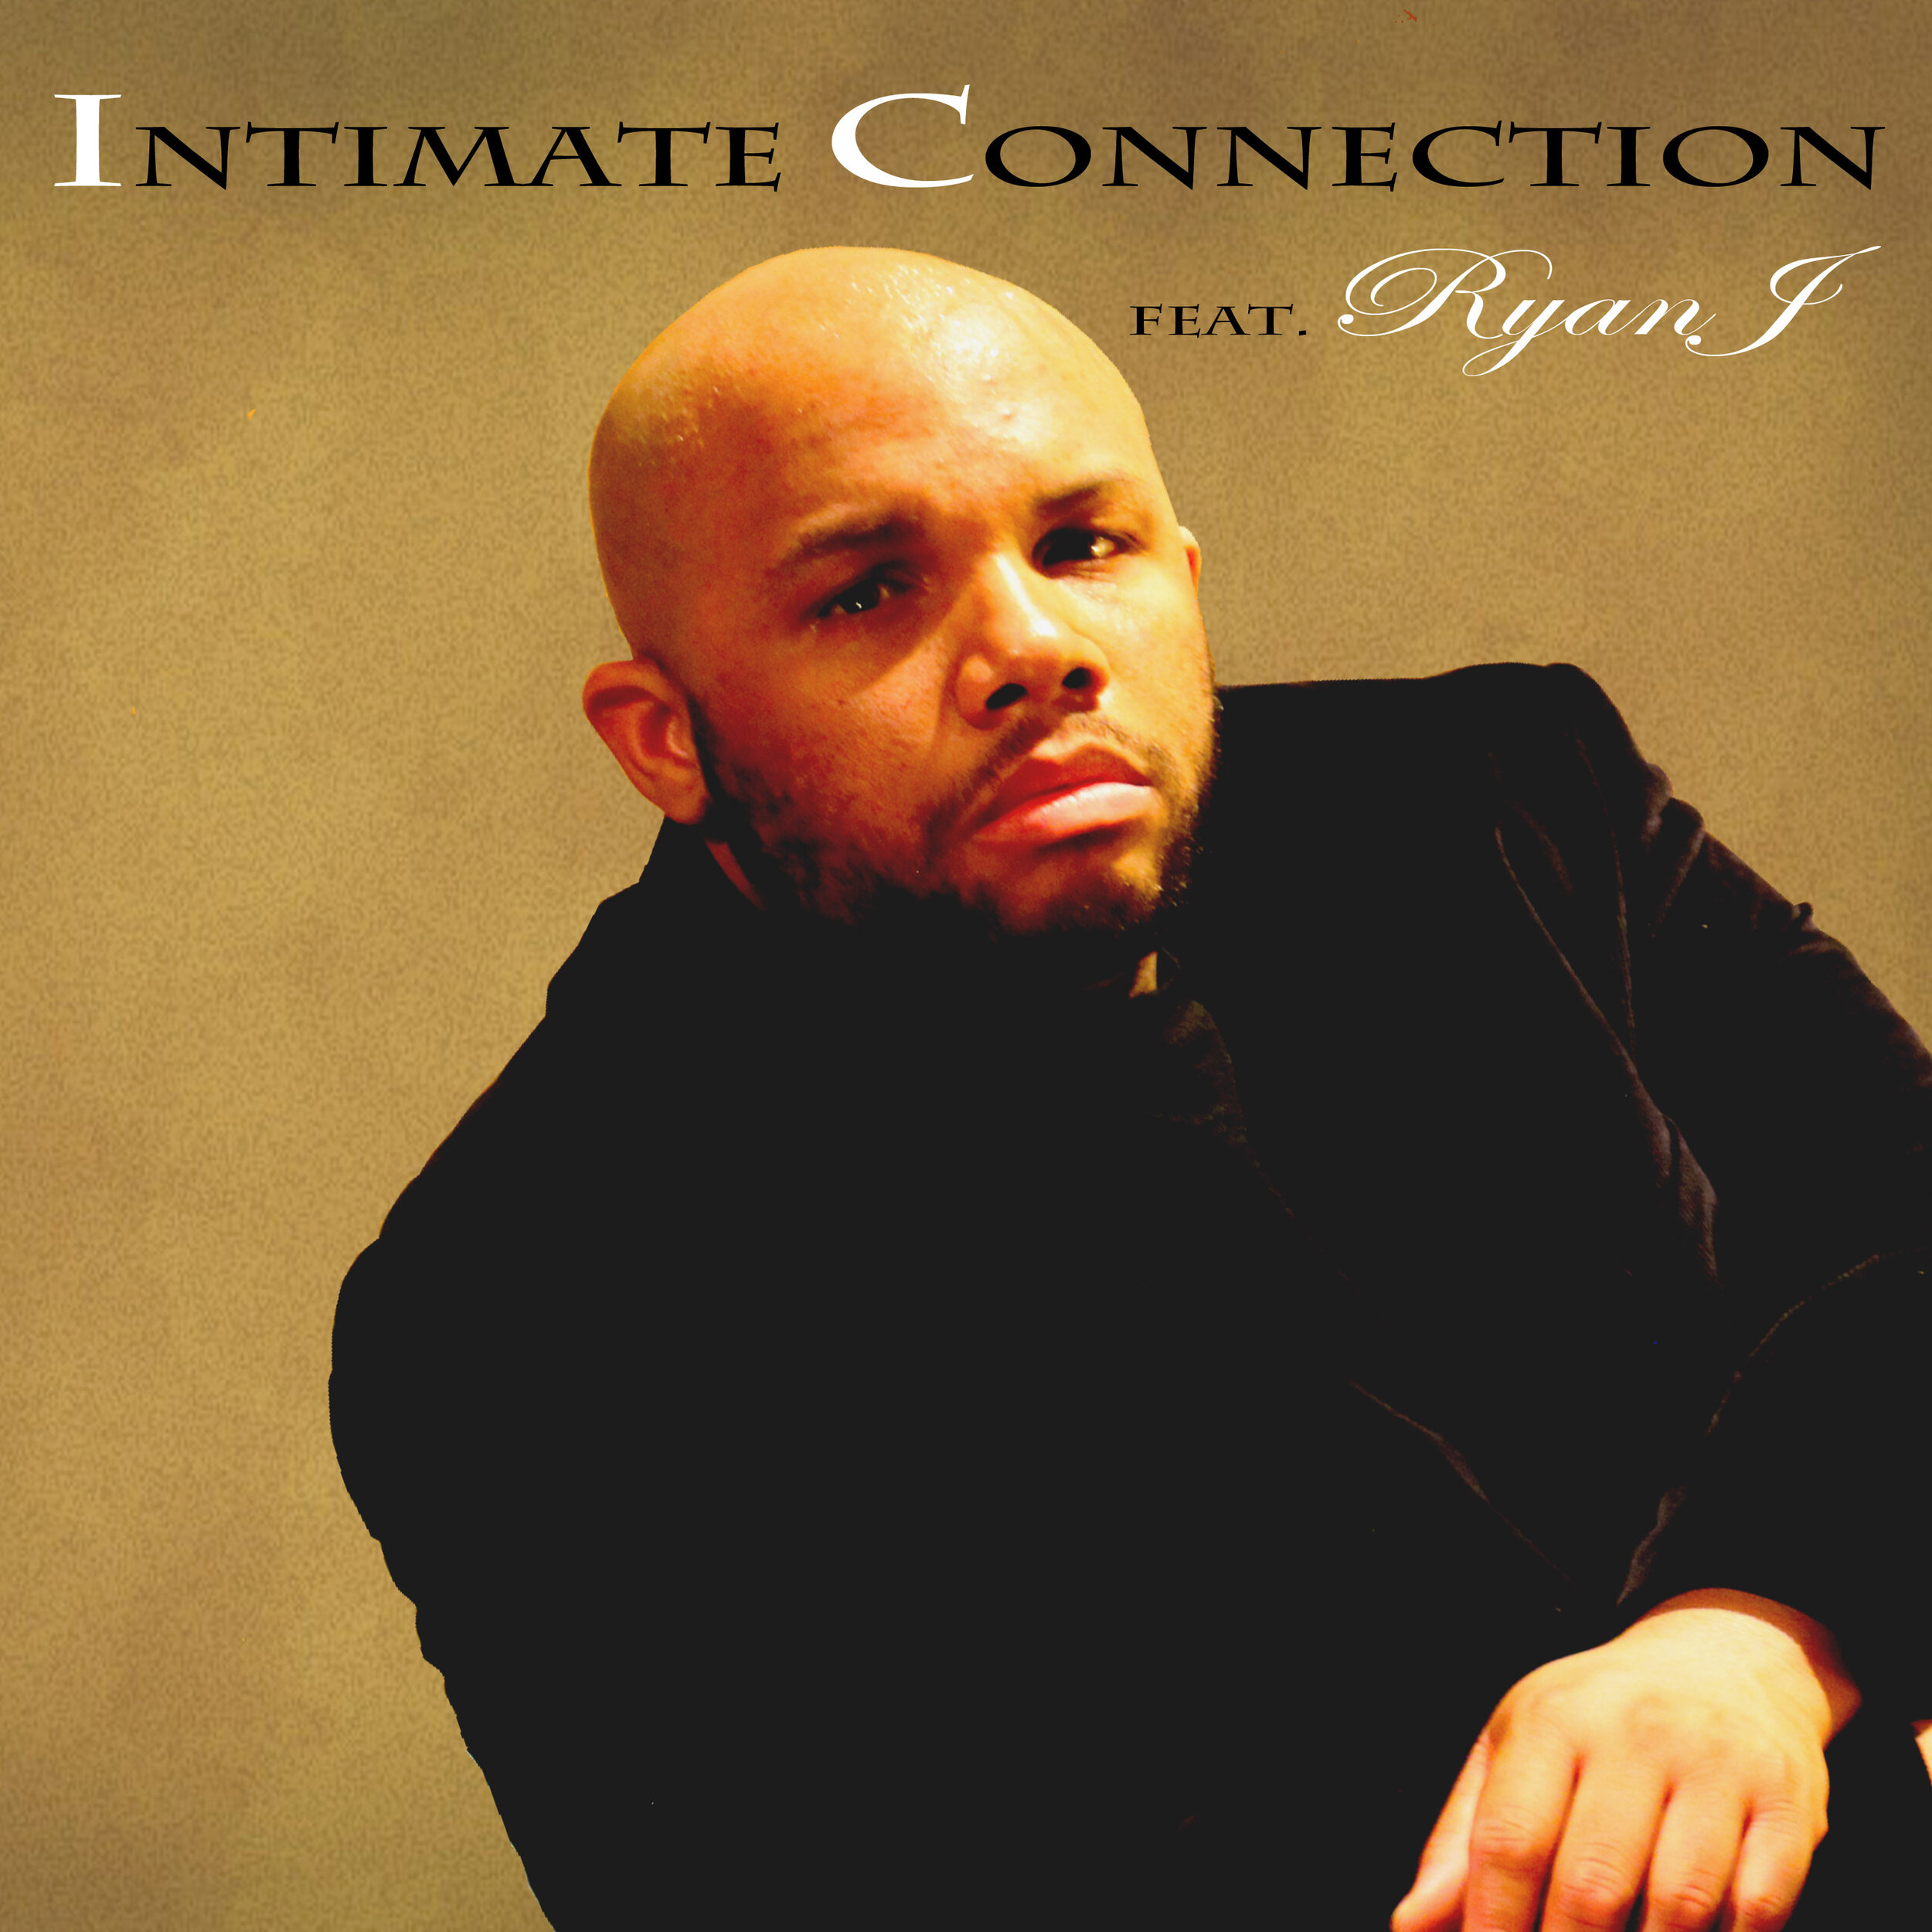 Artist:  Ryan J   Project:  Intimate Connection   Label/Release Date:  X-Square Music/2019   Song(s):  Intimate Connection   Credit:  Composer, Producer, Recording, Mixing